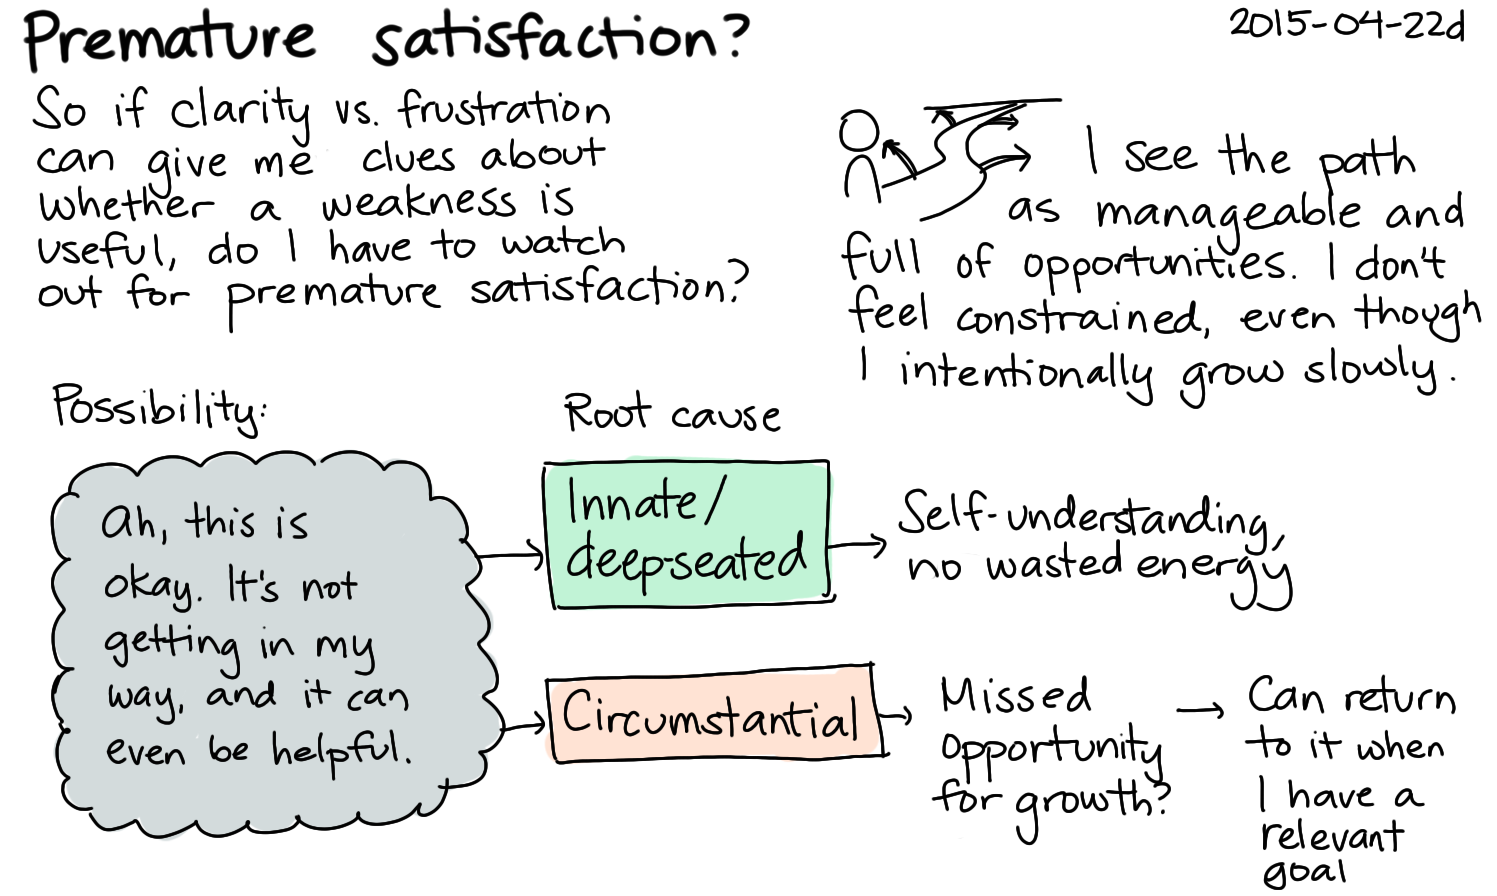 2015-04-22d Premature satisfaction -- index card #weaknesses.png